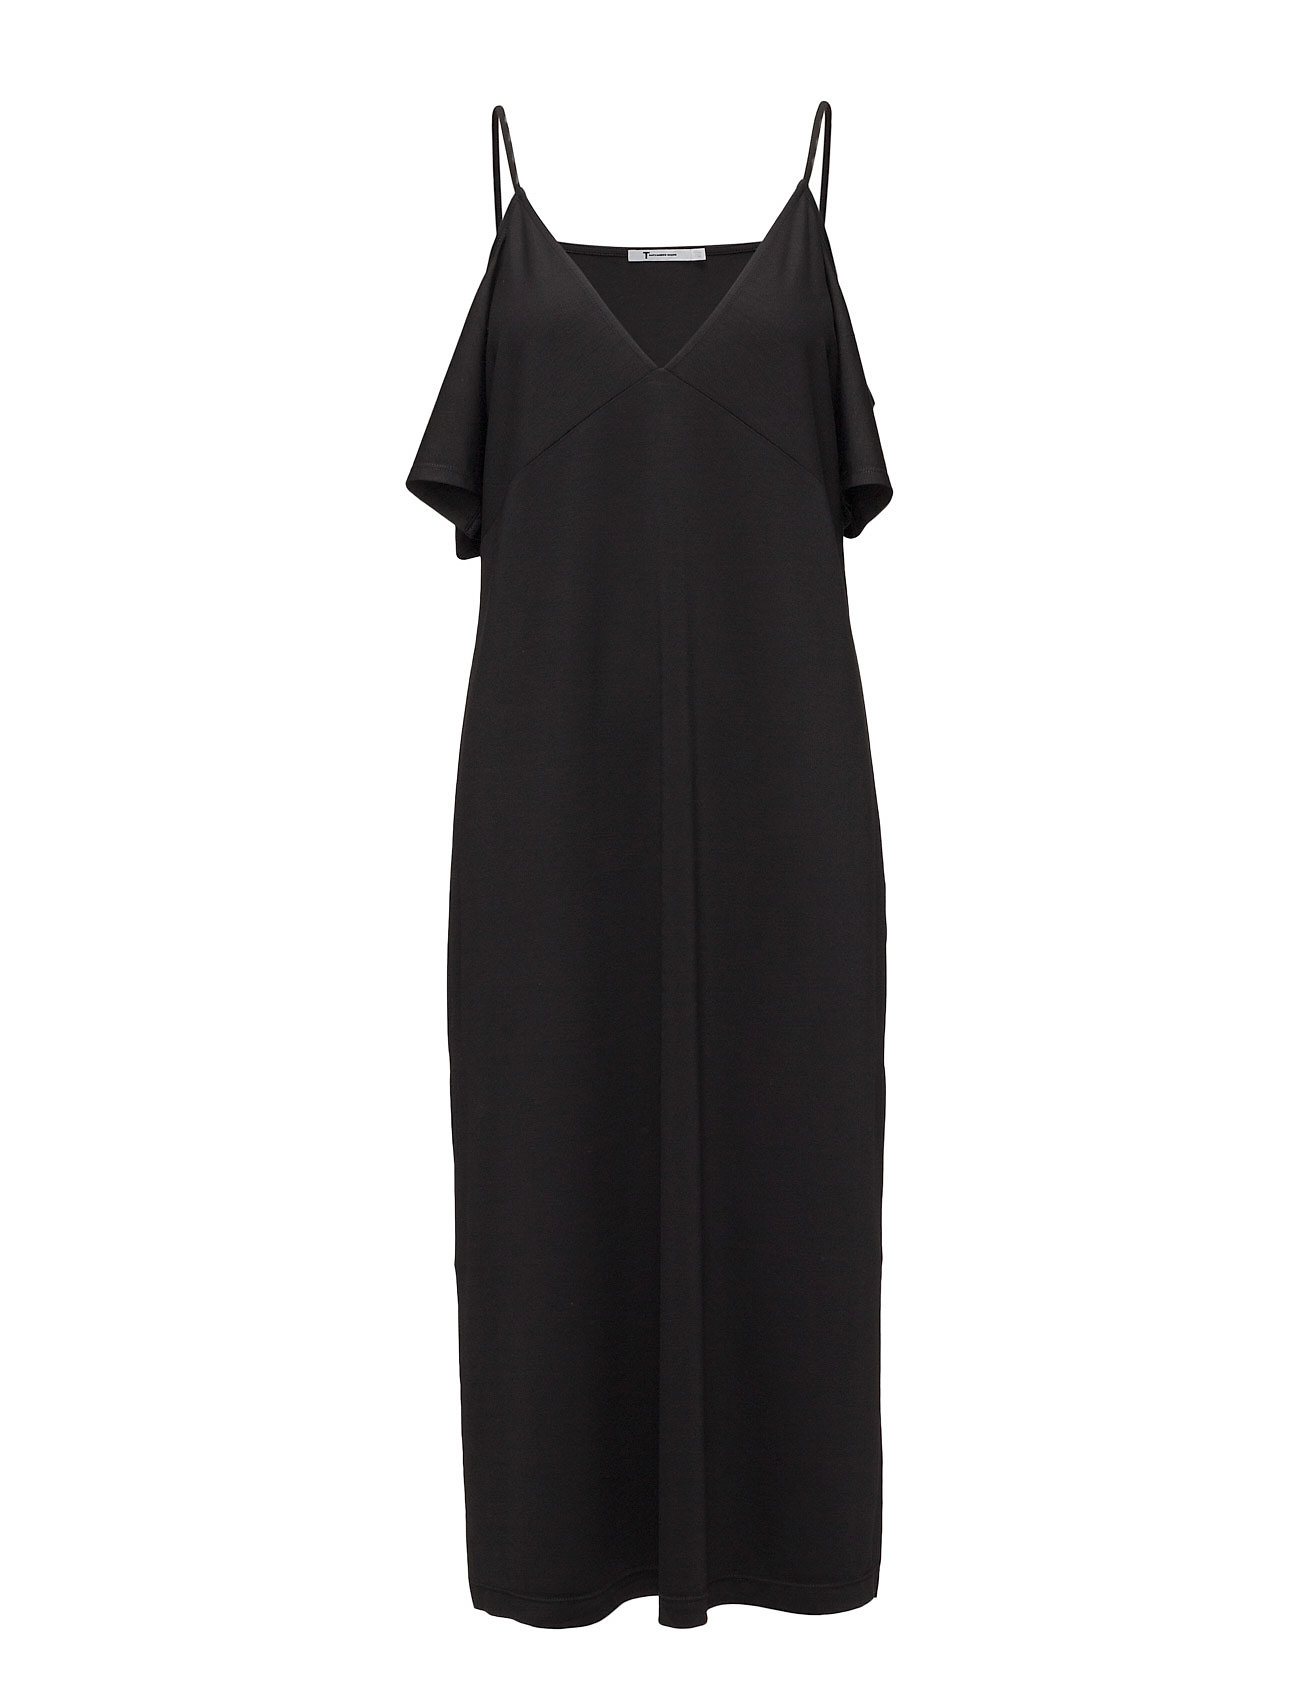 t by alexander wang Lux ponte cold shoulder midi dress with straps fra boozt.com dk